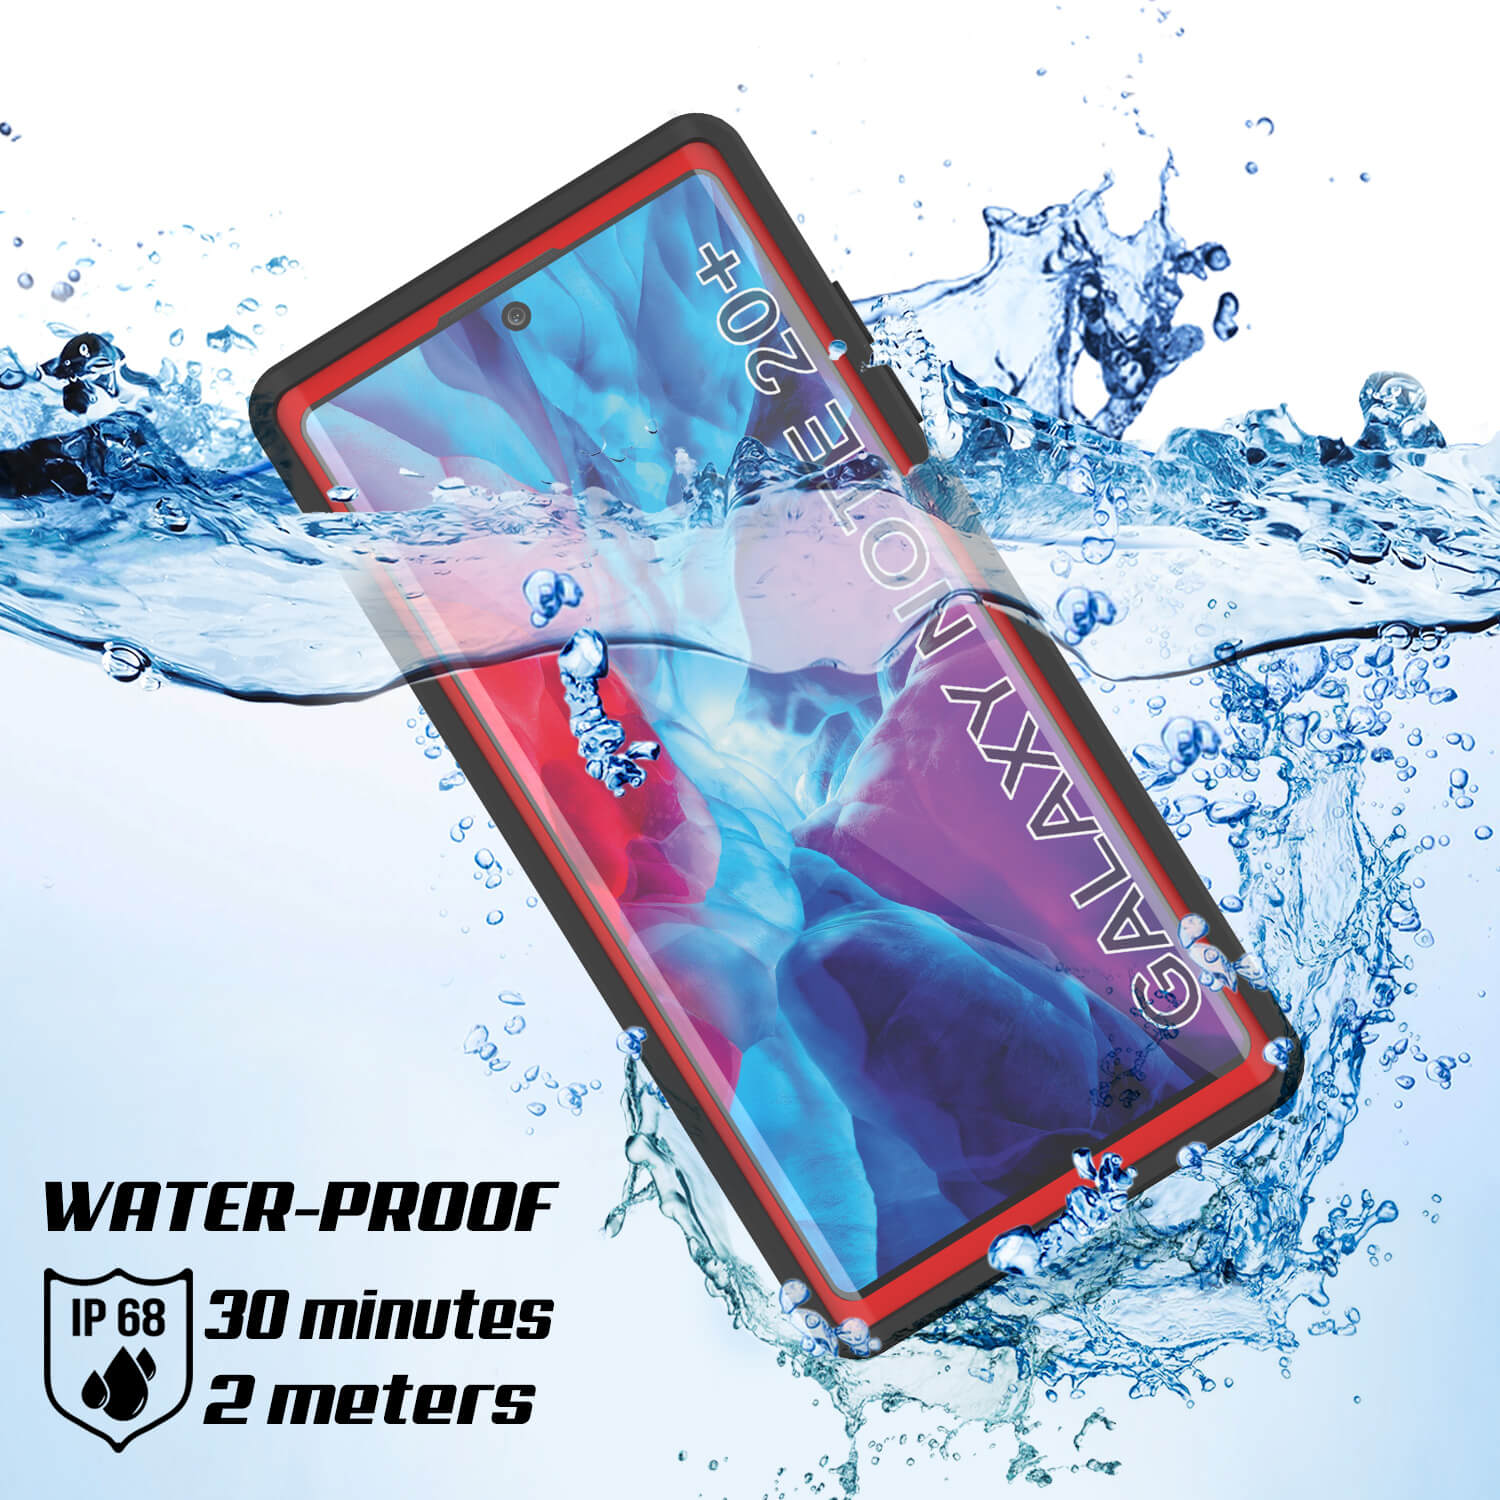 Galaxy Note 20 Ultra Waterproof Case, Punkcase Studstar Red Series Thin Armor Cover